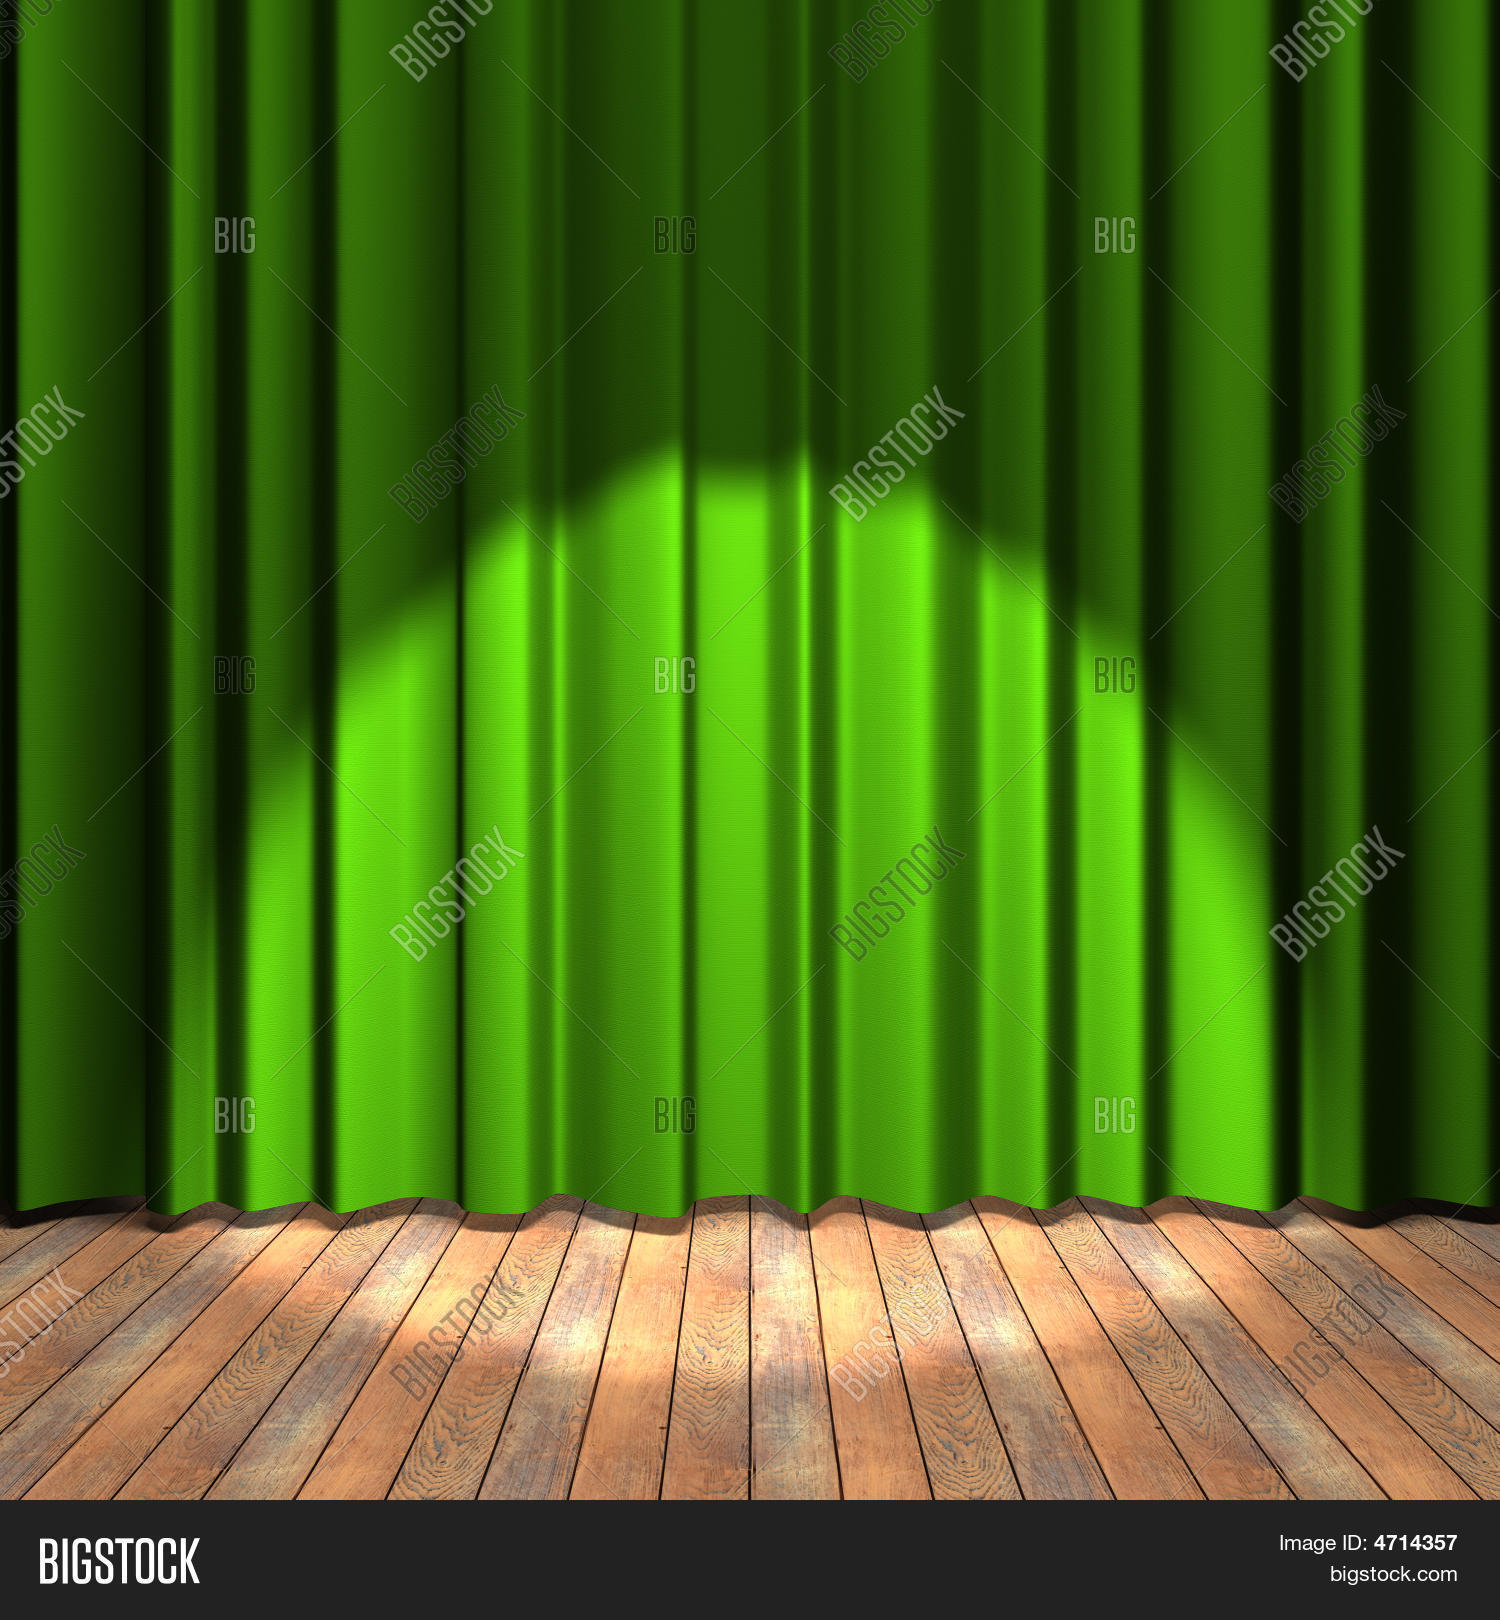 Green stage curtains - Green Curtain Stage With A Spot Light